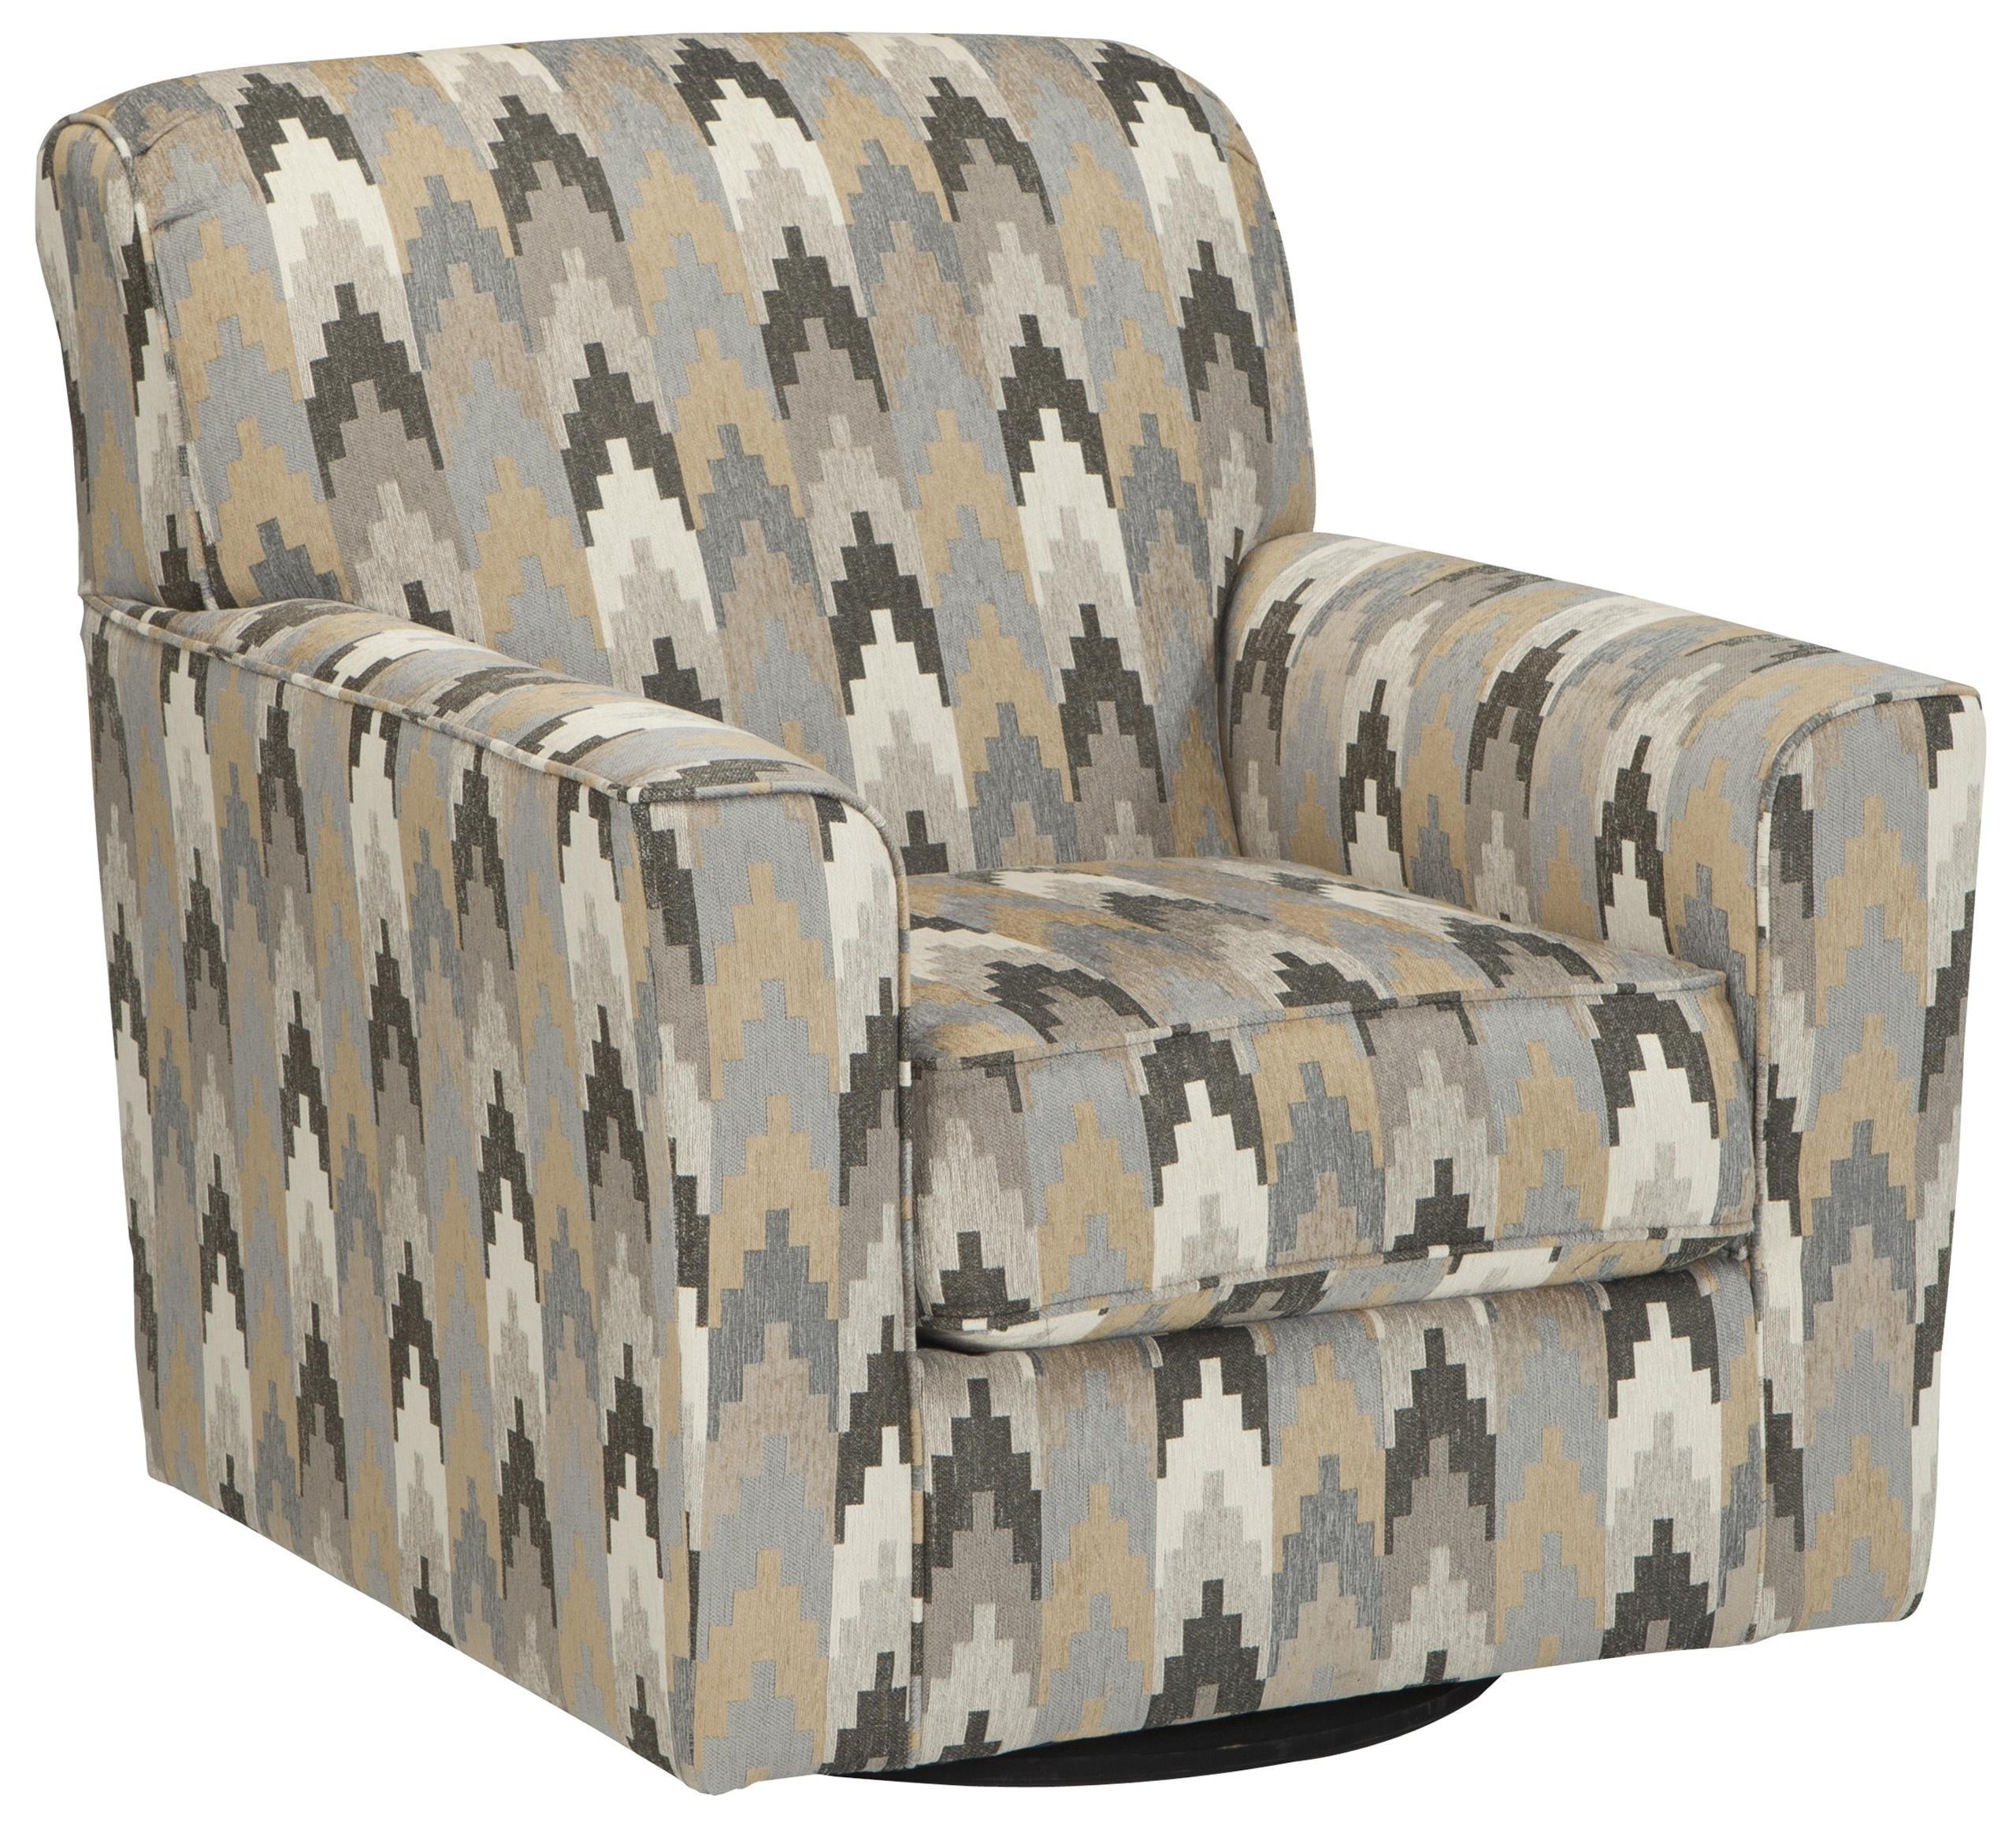 Benchcraft Braxlin Swivel Accent Chair - Item Number: 8850244